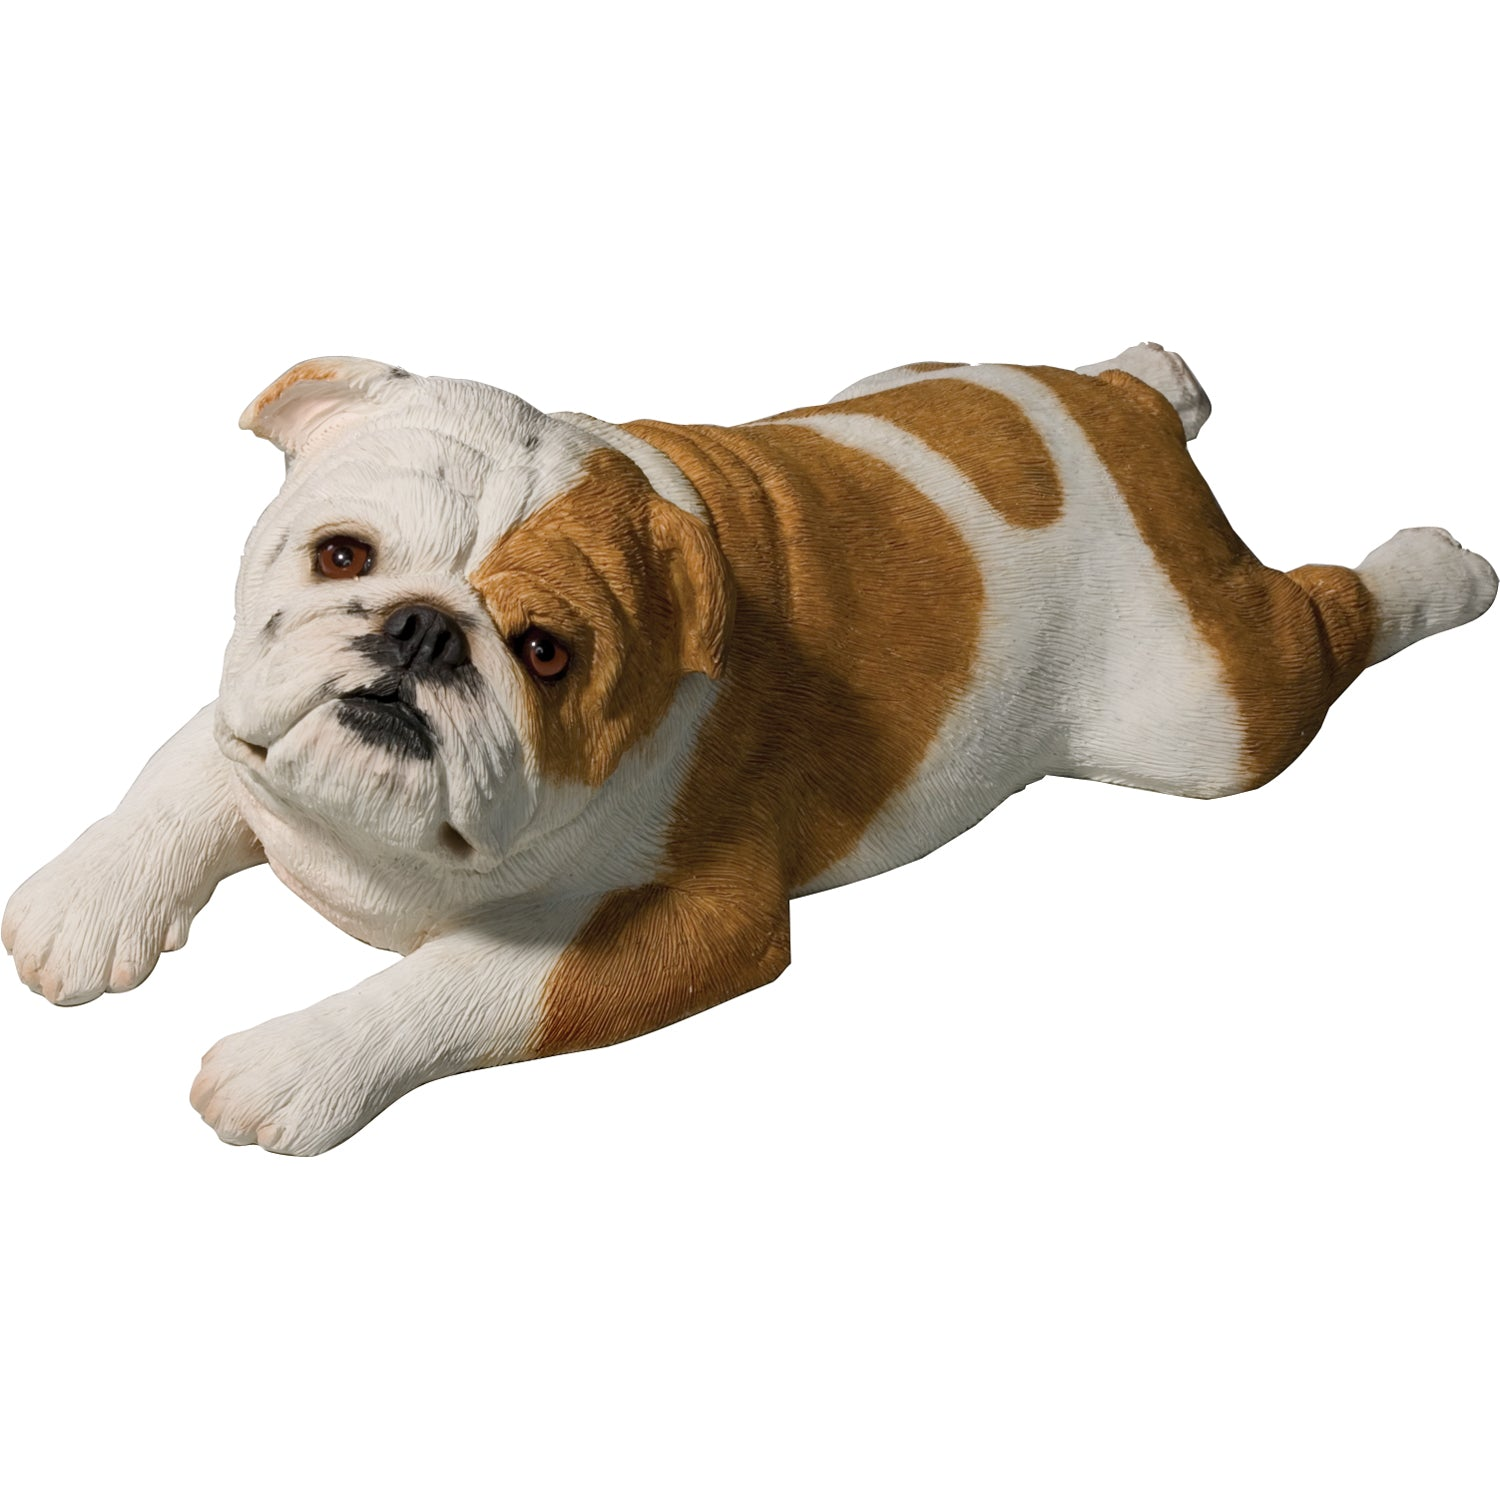 "Sandicast ""Original Size"" Lying Fawn Bulldog Sculpture"